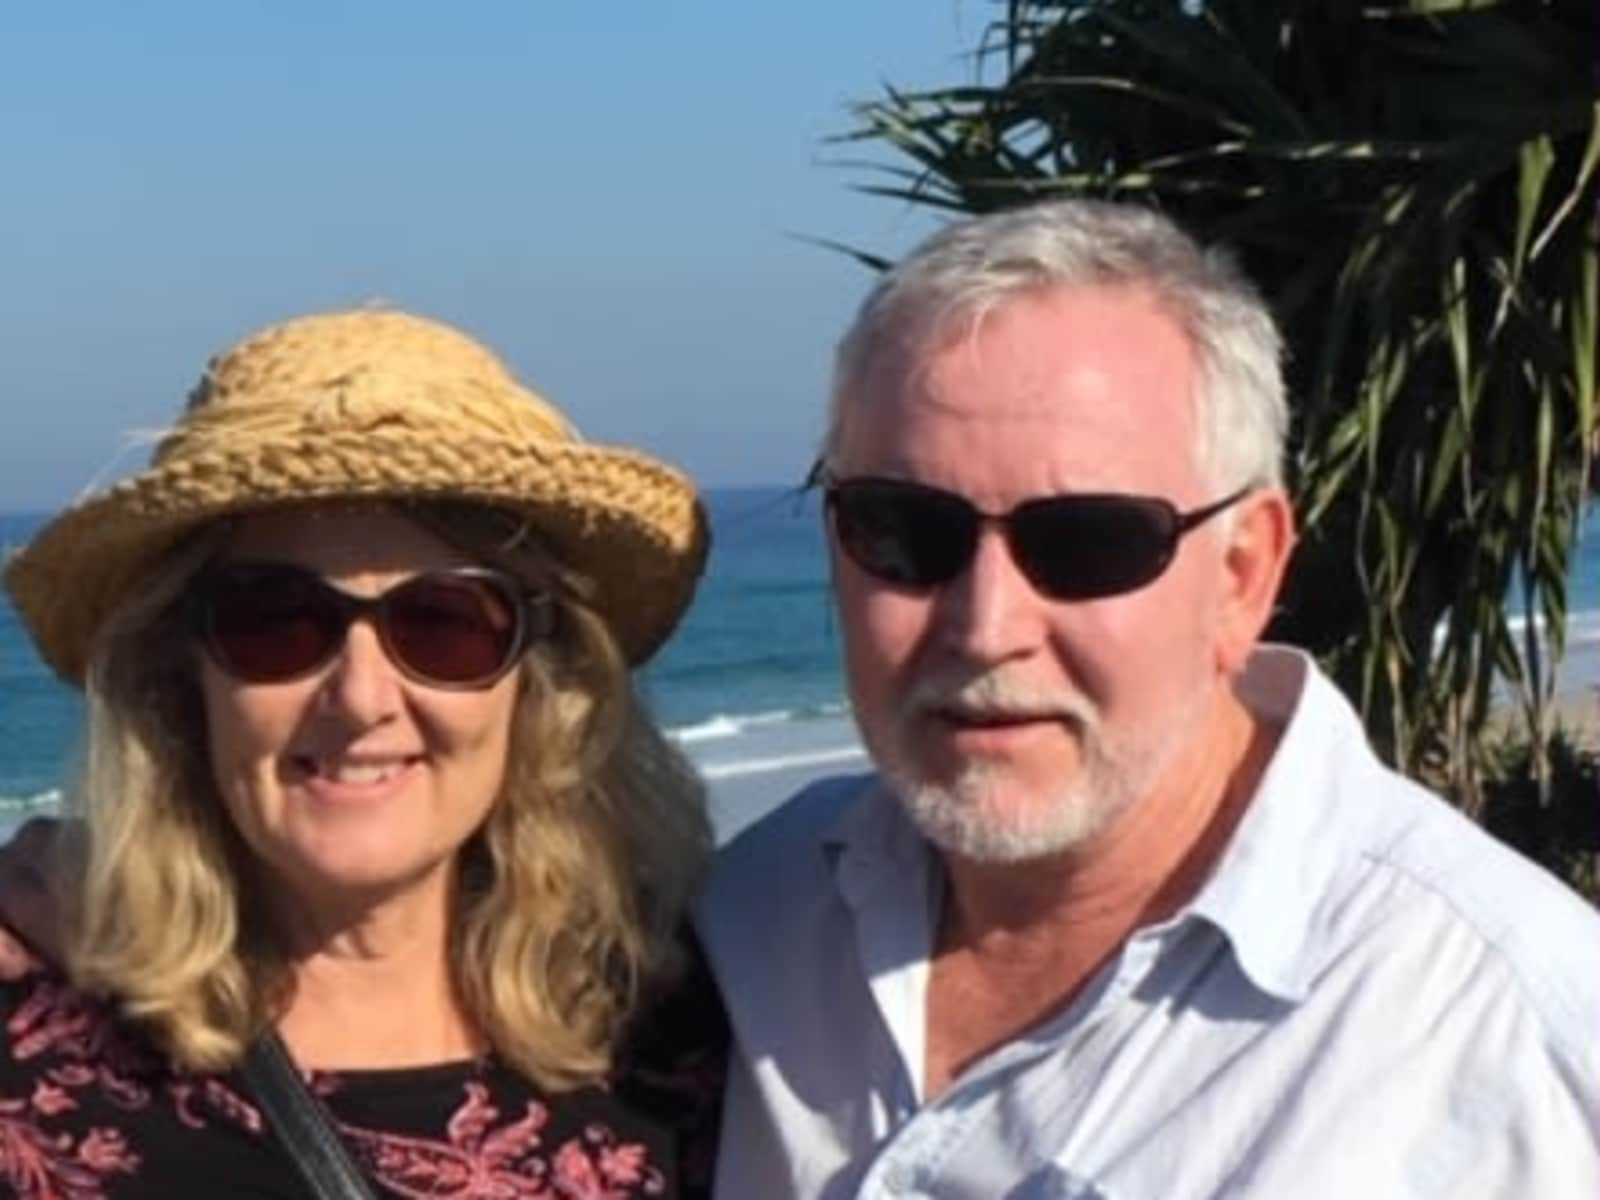 Cath and john & Cathie from Ocean Shores, New South Wales, Australia